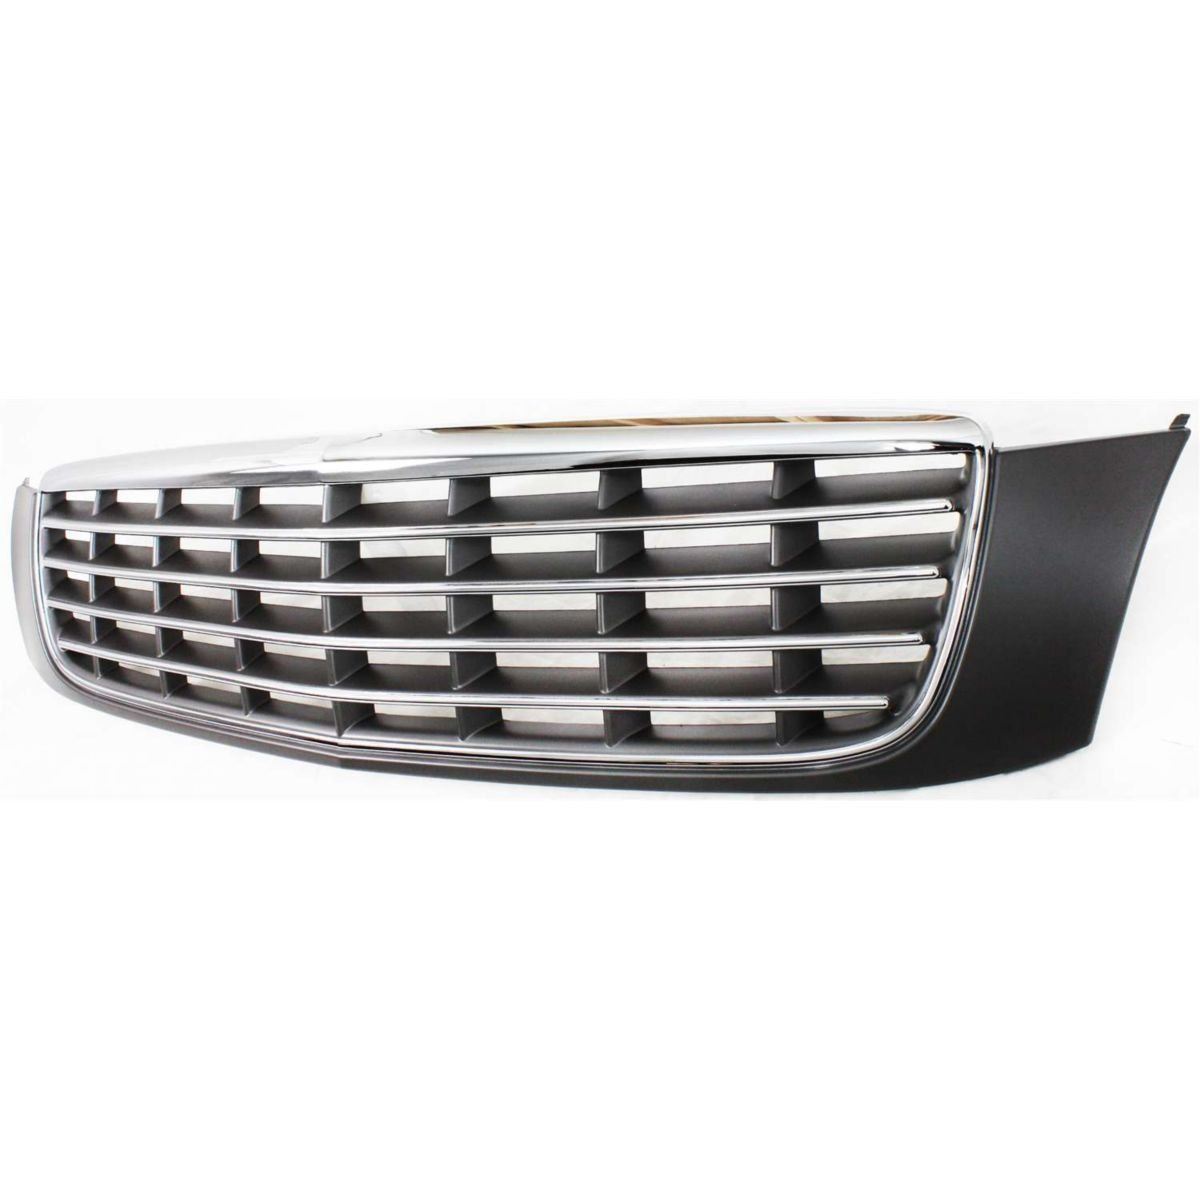 Diften 102-A7382-X01 - New Grille Assembly Grill Chrome shell gray insert DeVille GM1200502 89025060